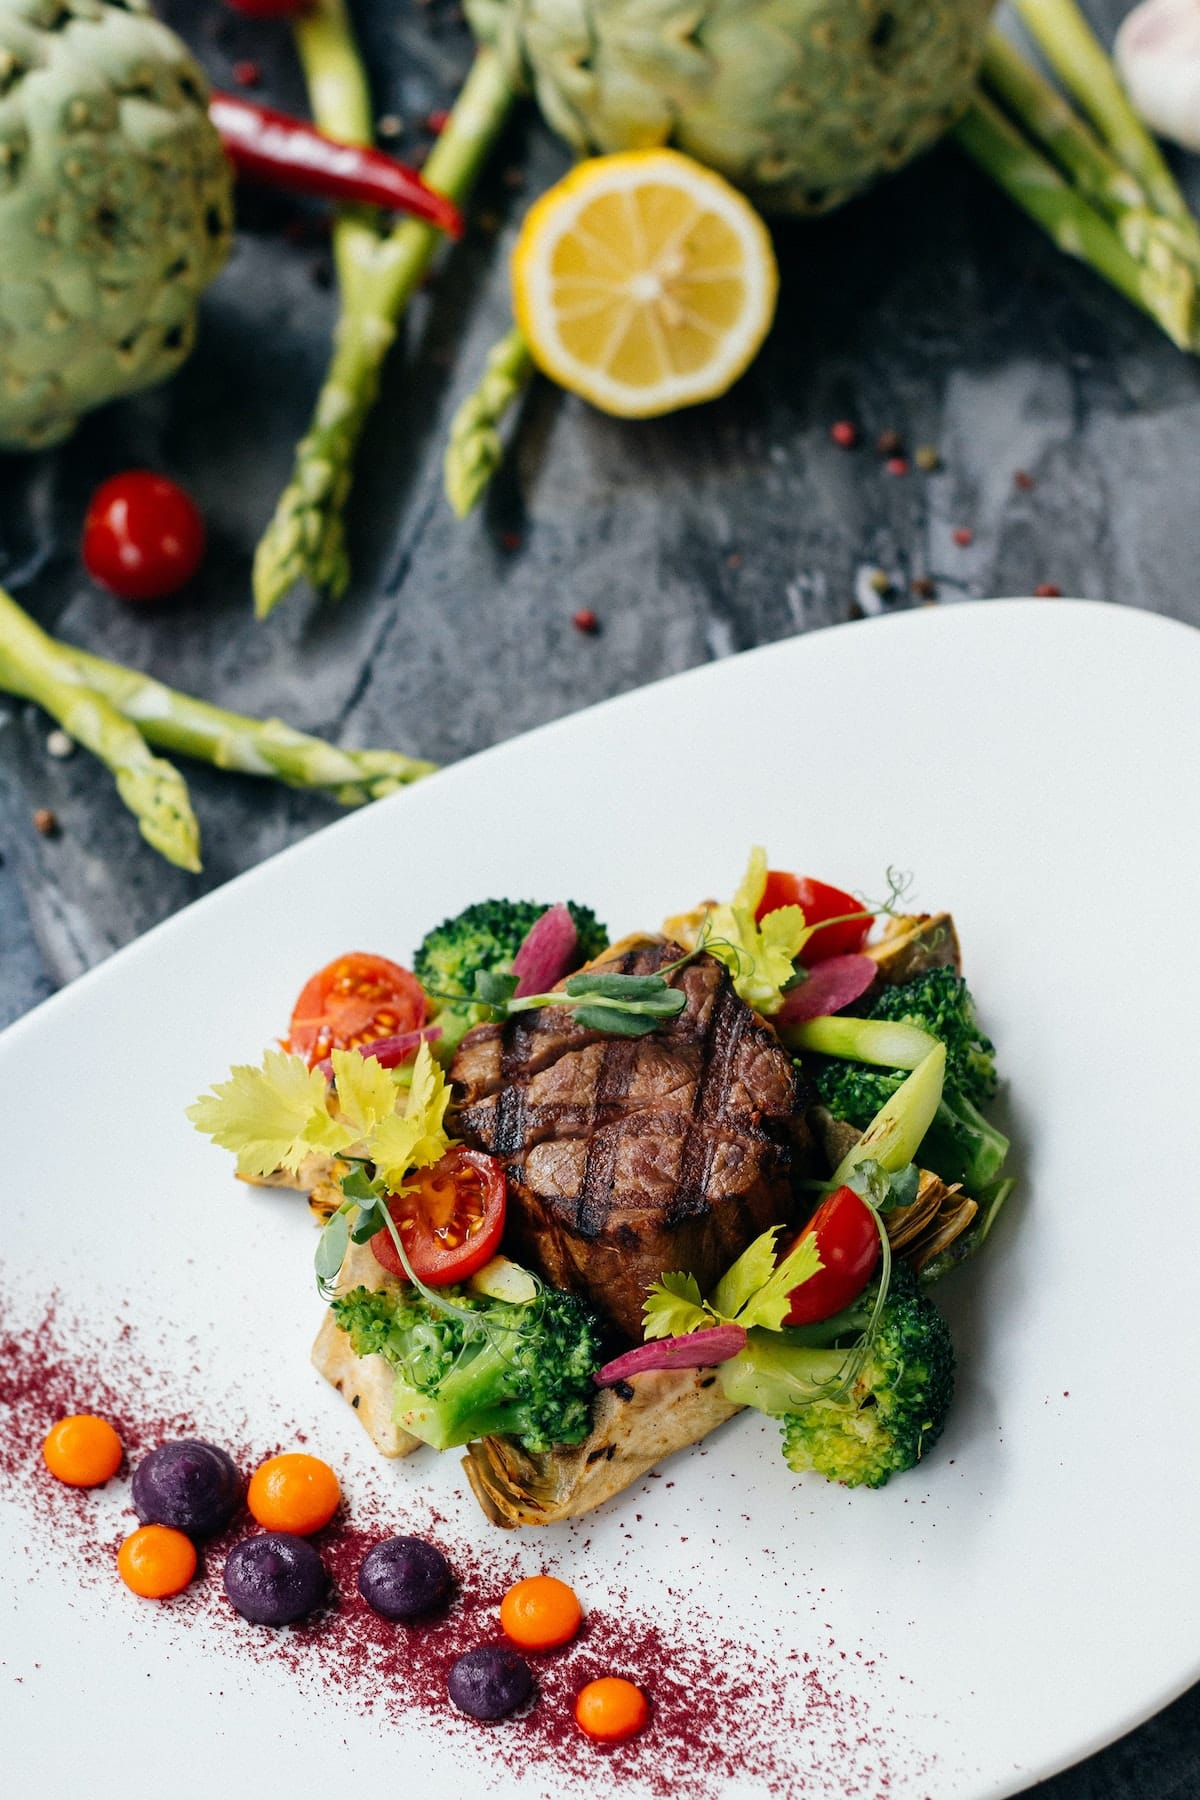 cooked steak with vegetables on a plate